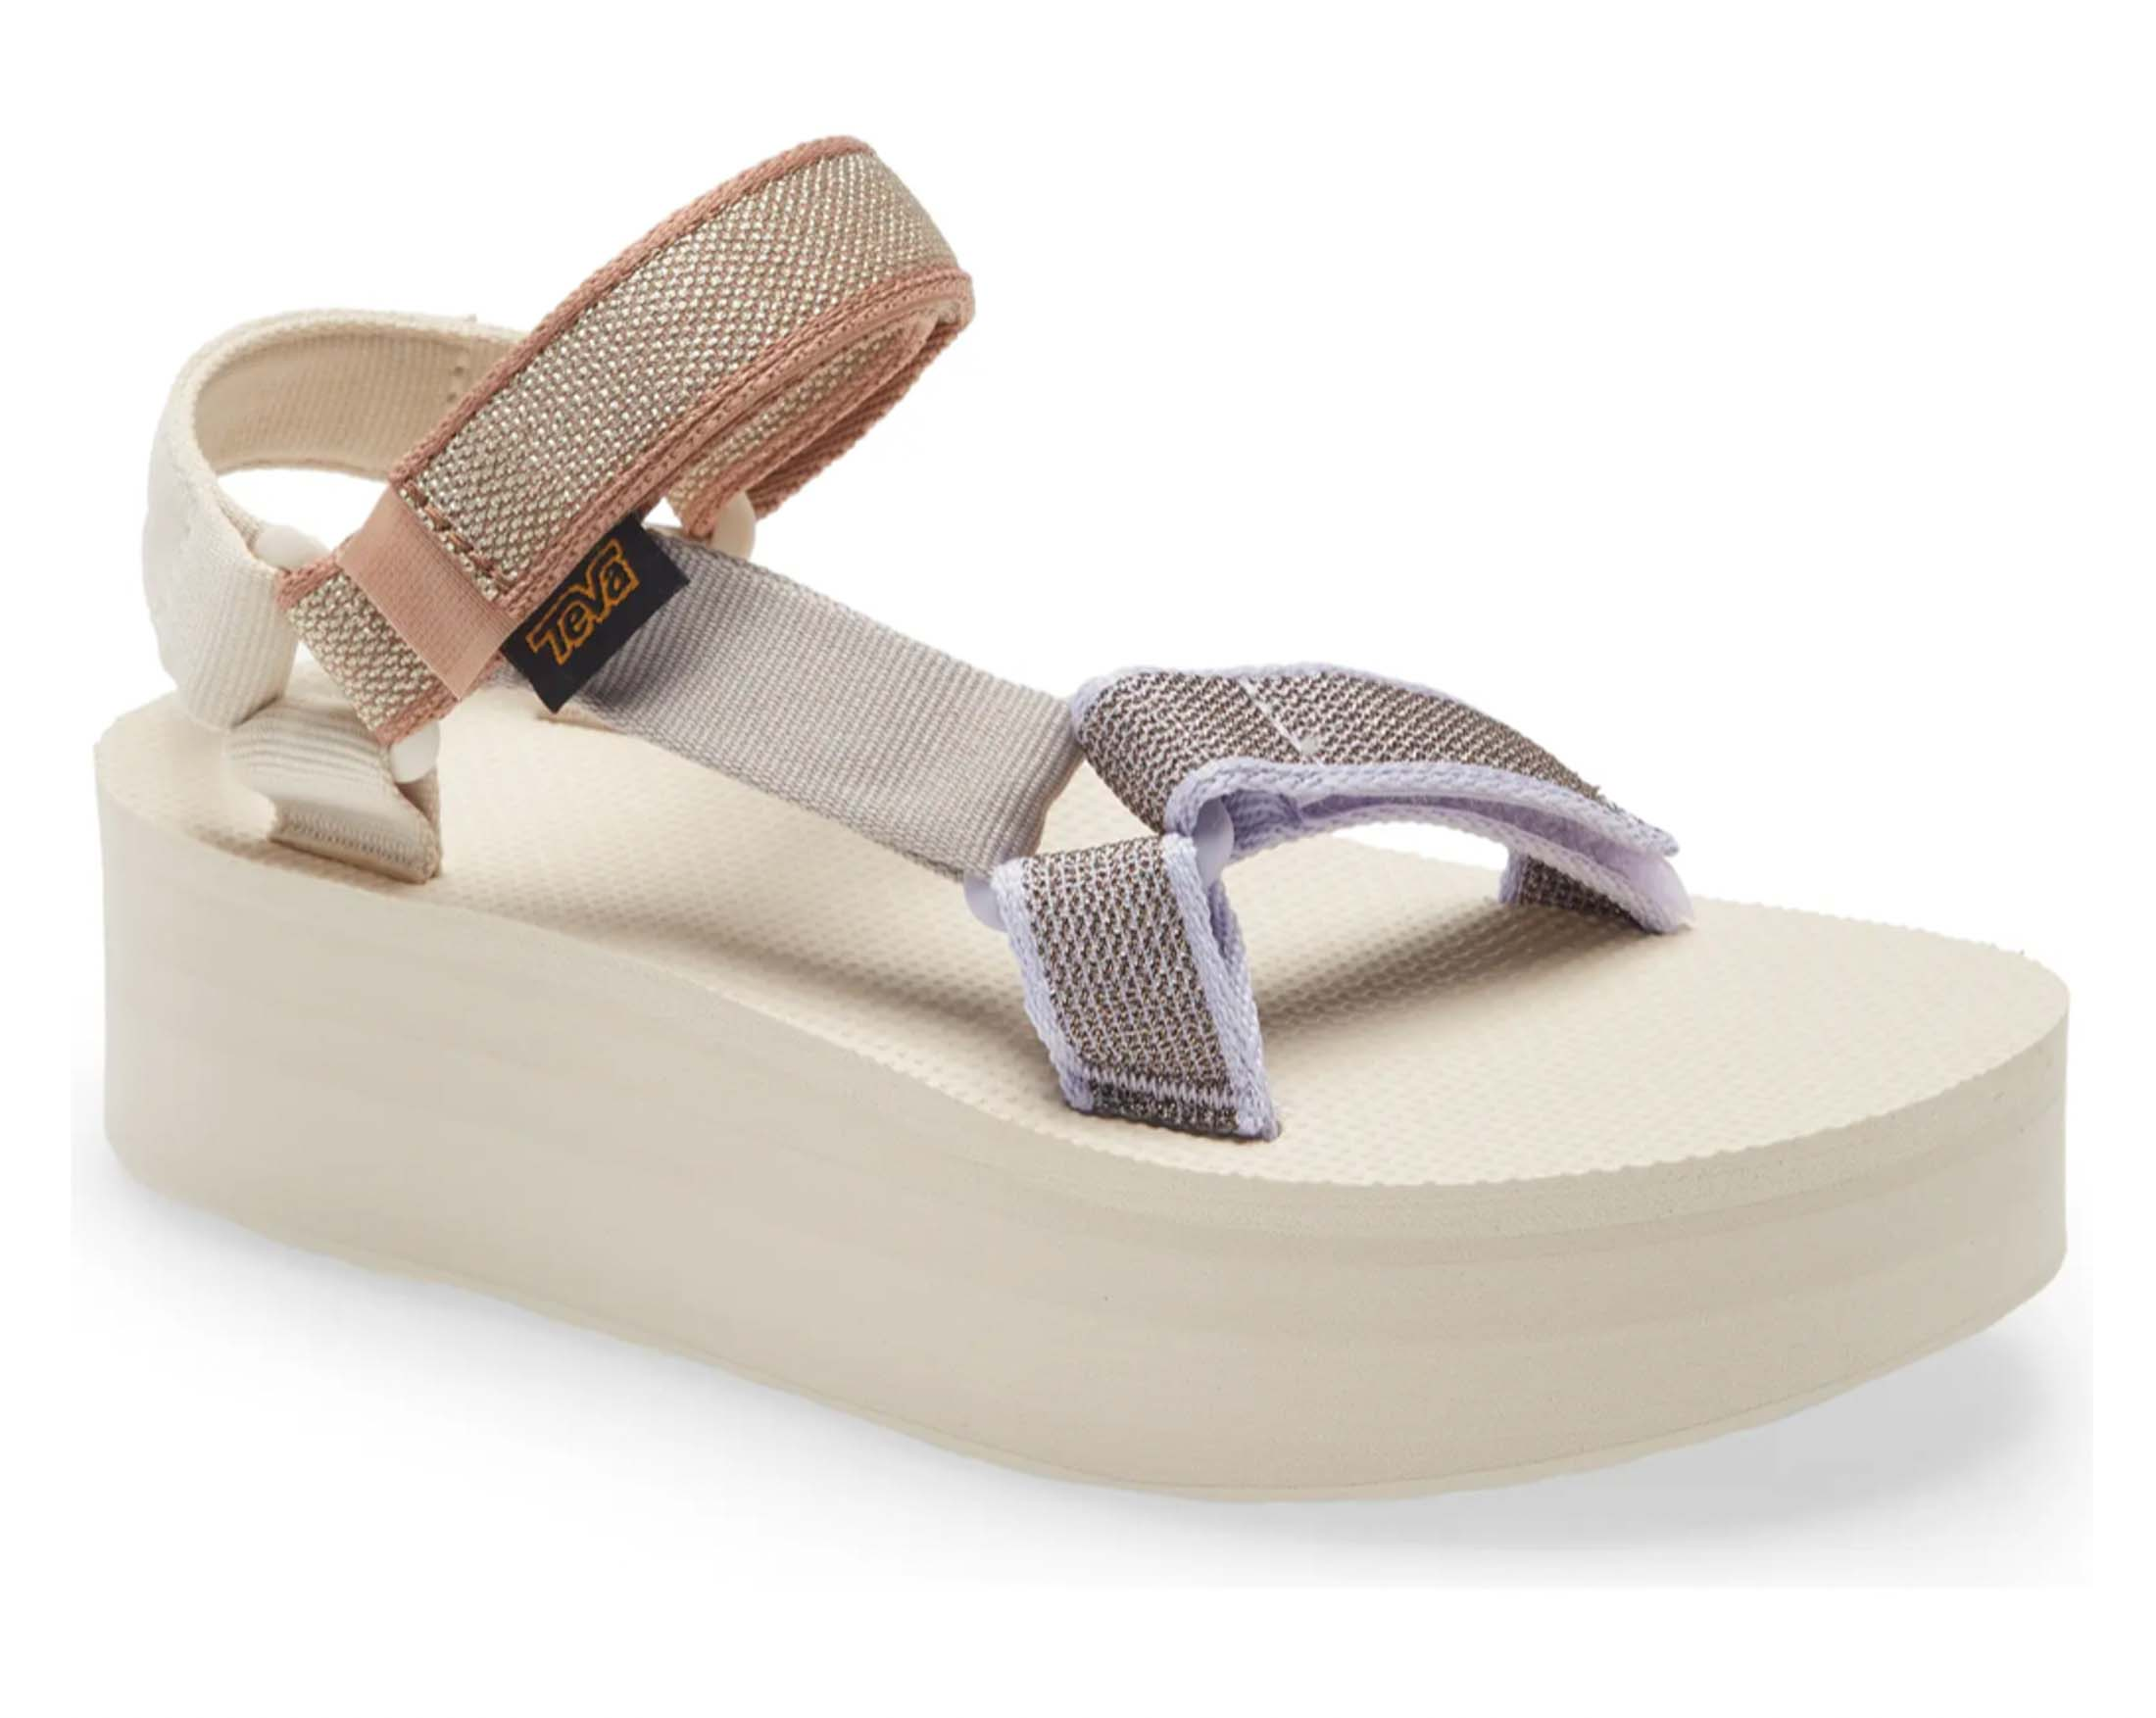 It's no secret that Teva is one of the most iconic brands and they have mastered the flatform sandal. The metallic flatform sandals are pretty and made from eco-friendly REPREVE® recycled polyester.